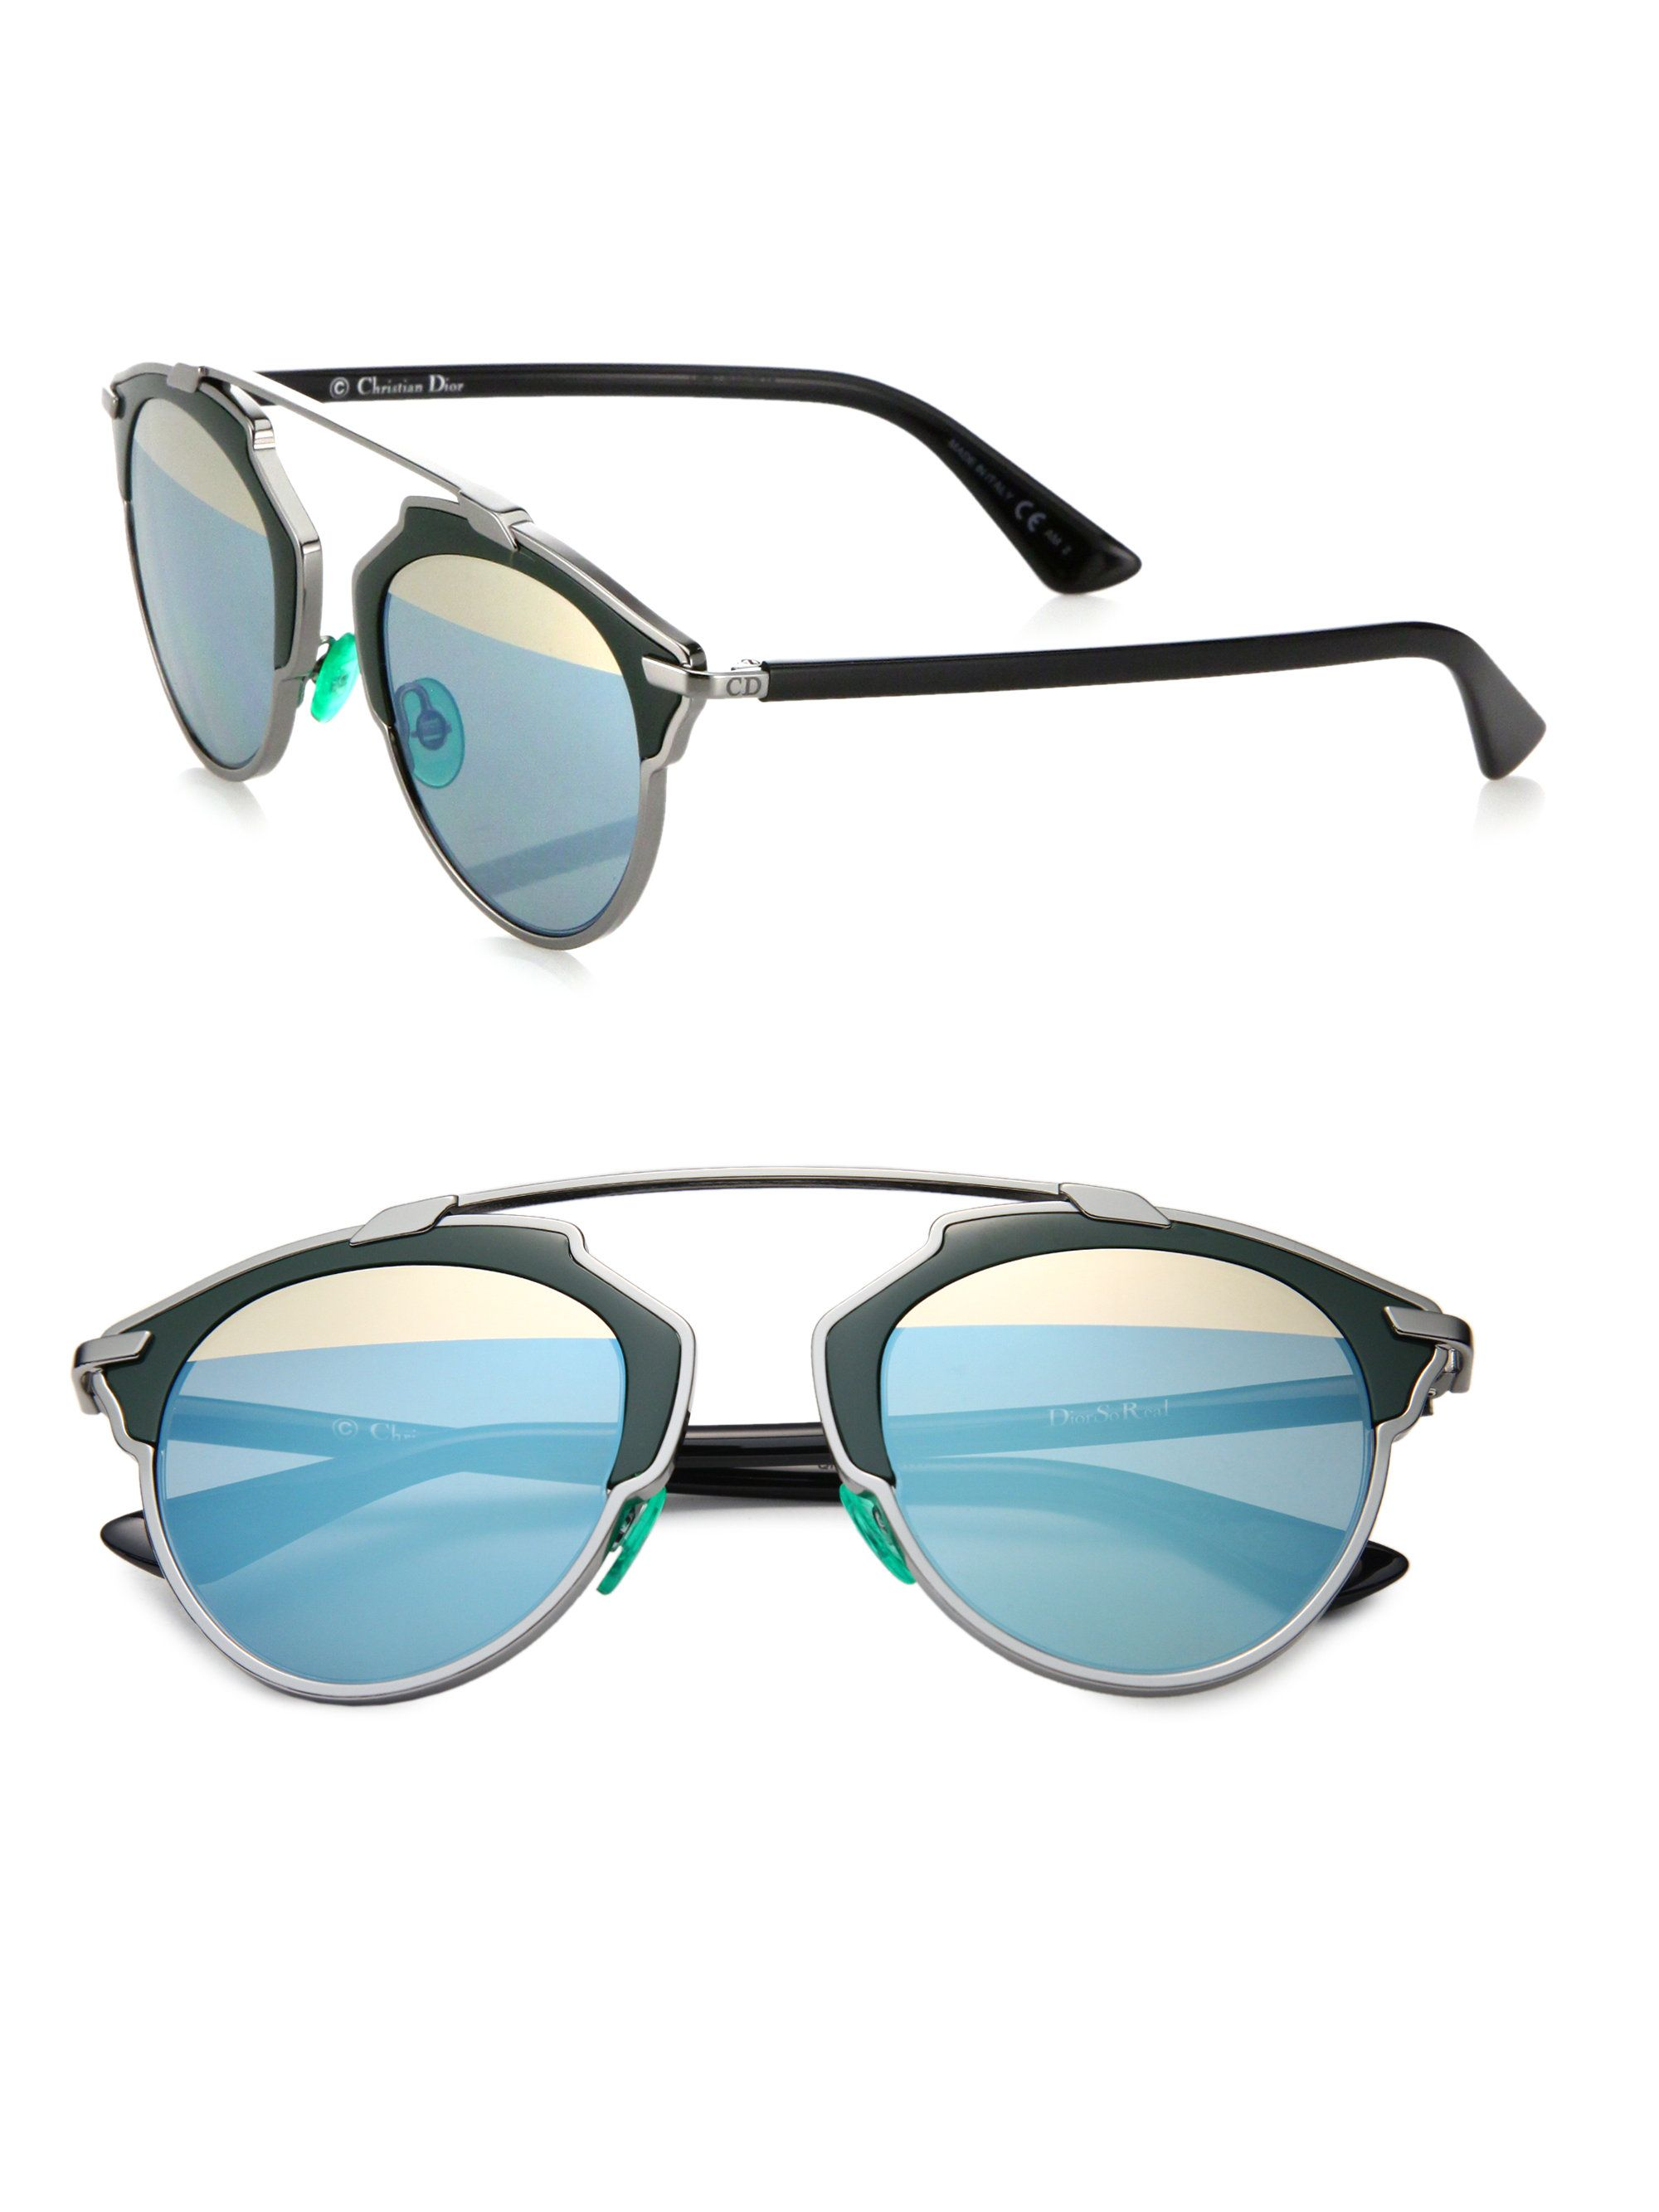 ff568cec7dd Dior So Real 48Mm Pantos Sunglasses in Green (green-blue)